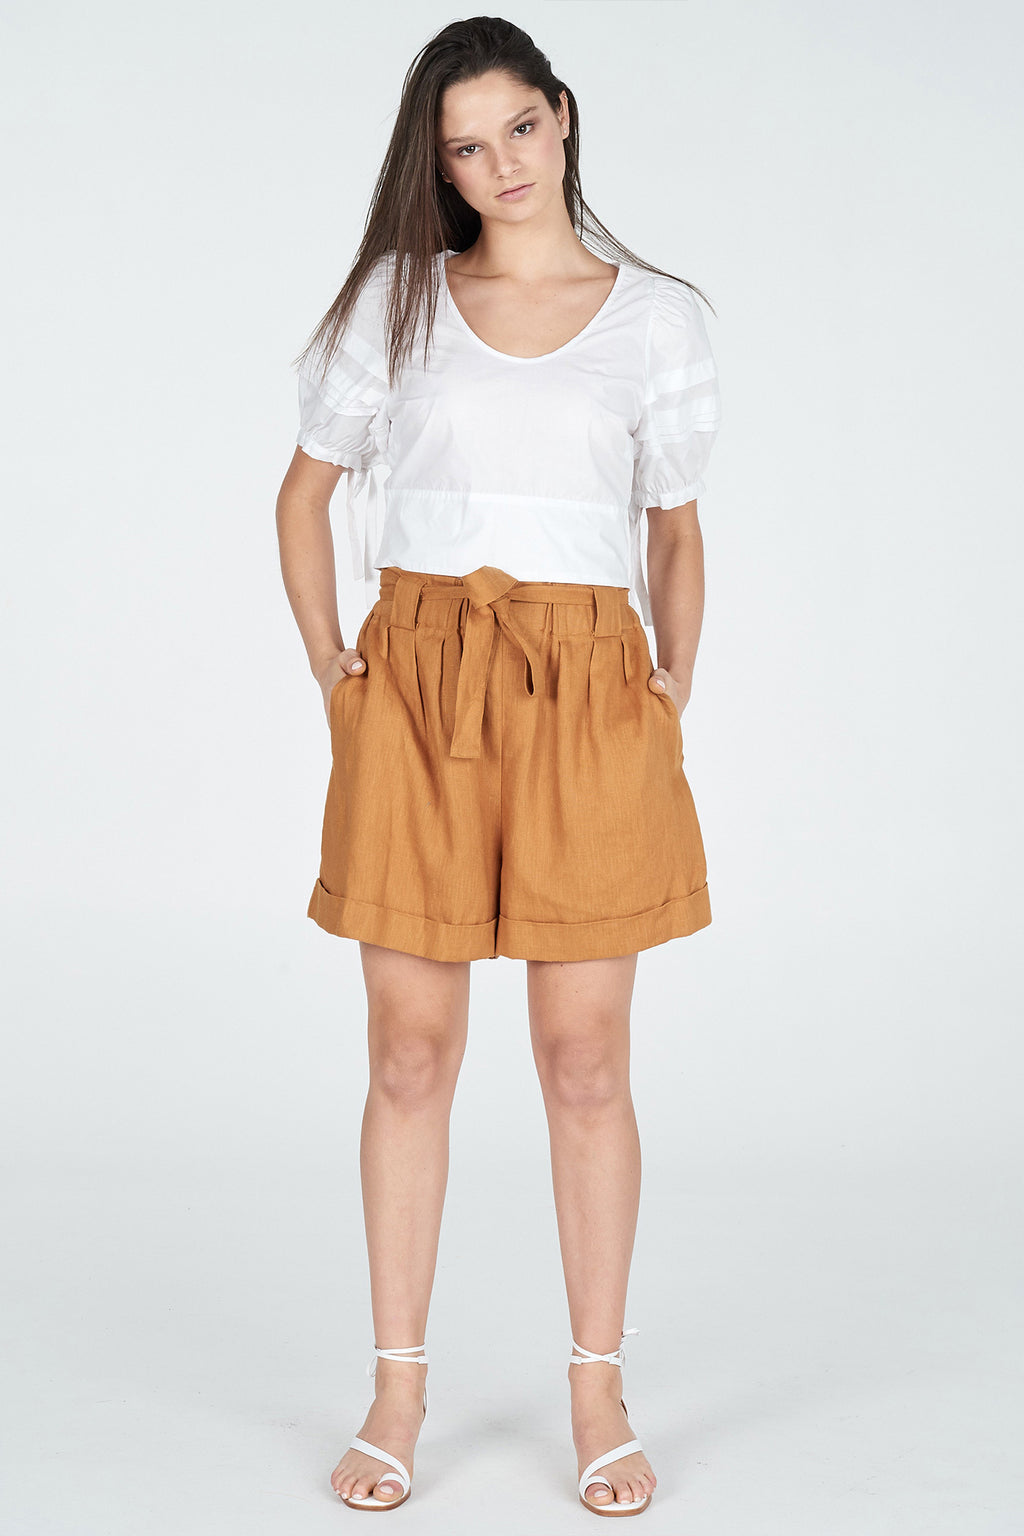 ZOE KRATZMANN - Fluent Shorts online at PAYA boutique